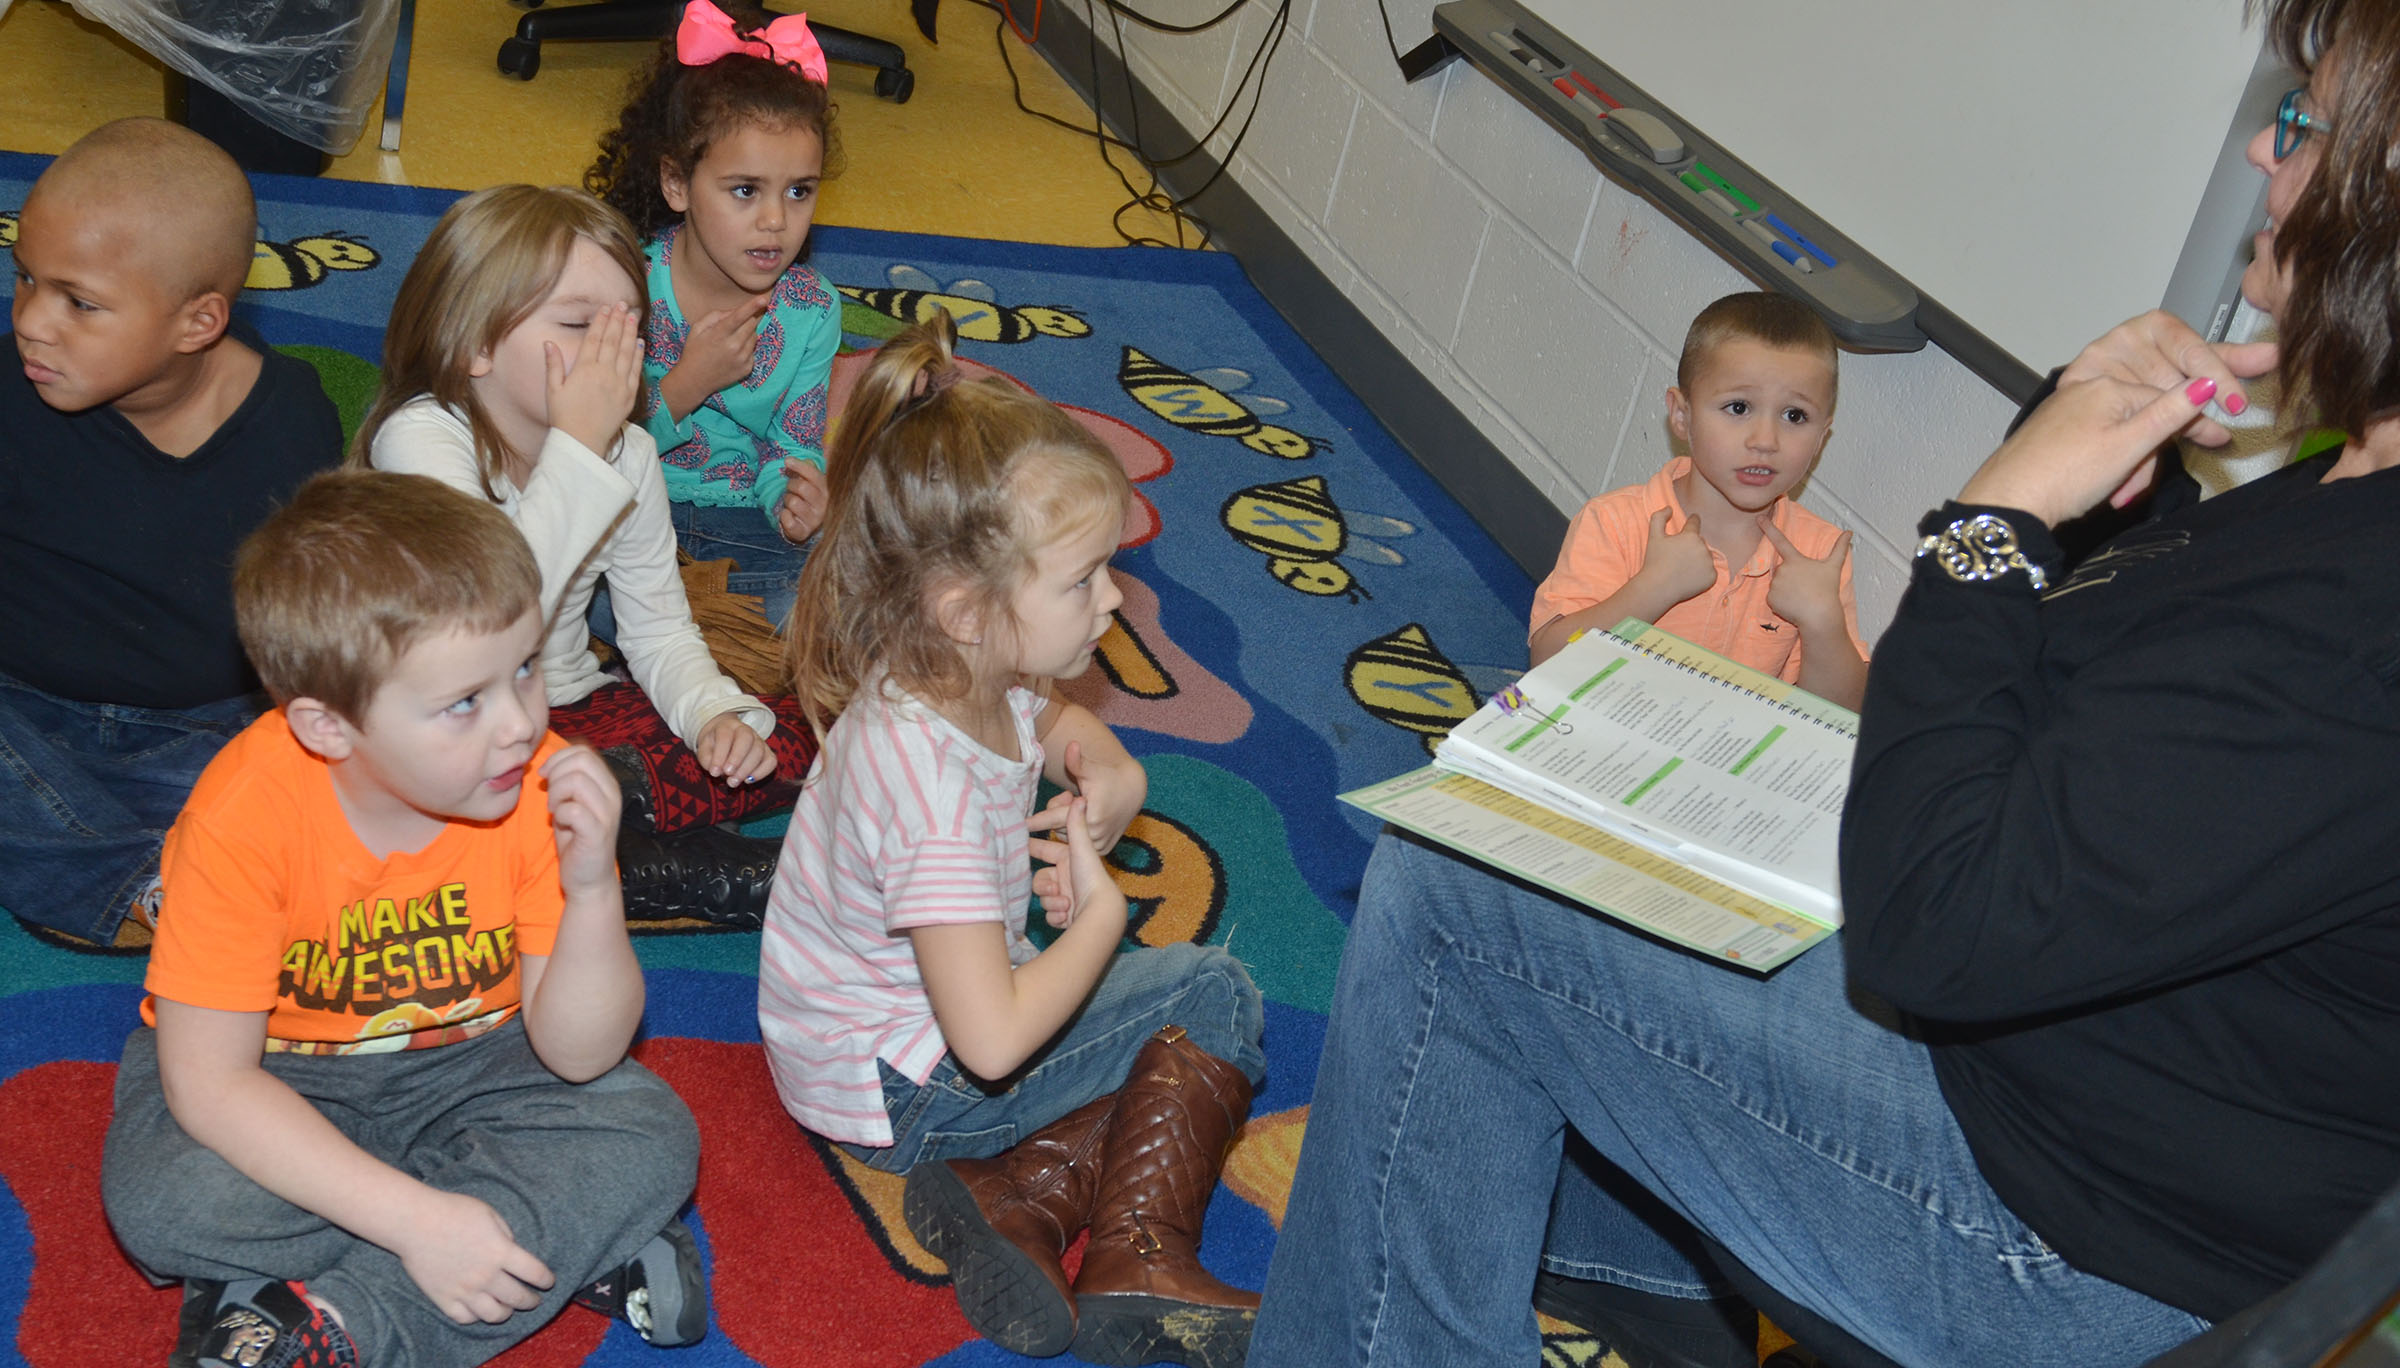 Susan Kennon, a Campbellsville Family Resource and Youth Services Center liaison at CES, sings a song about feelings with preschool students.